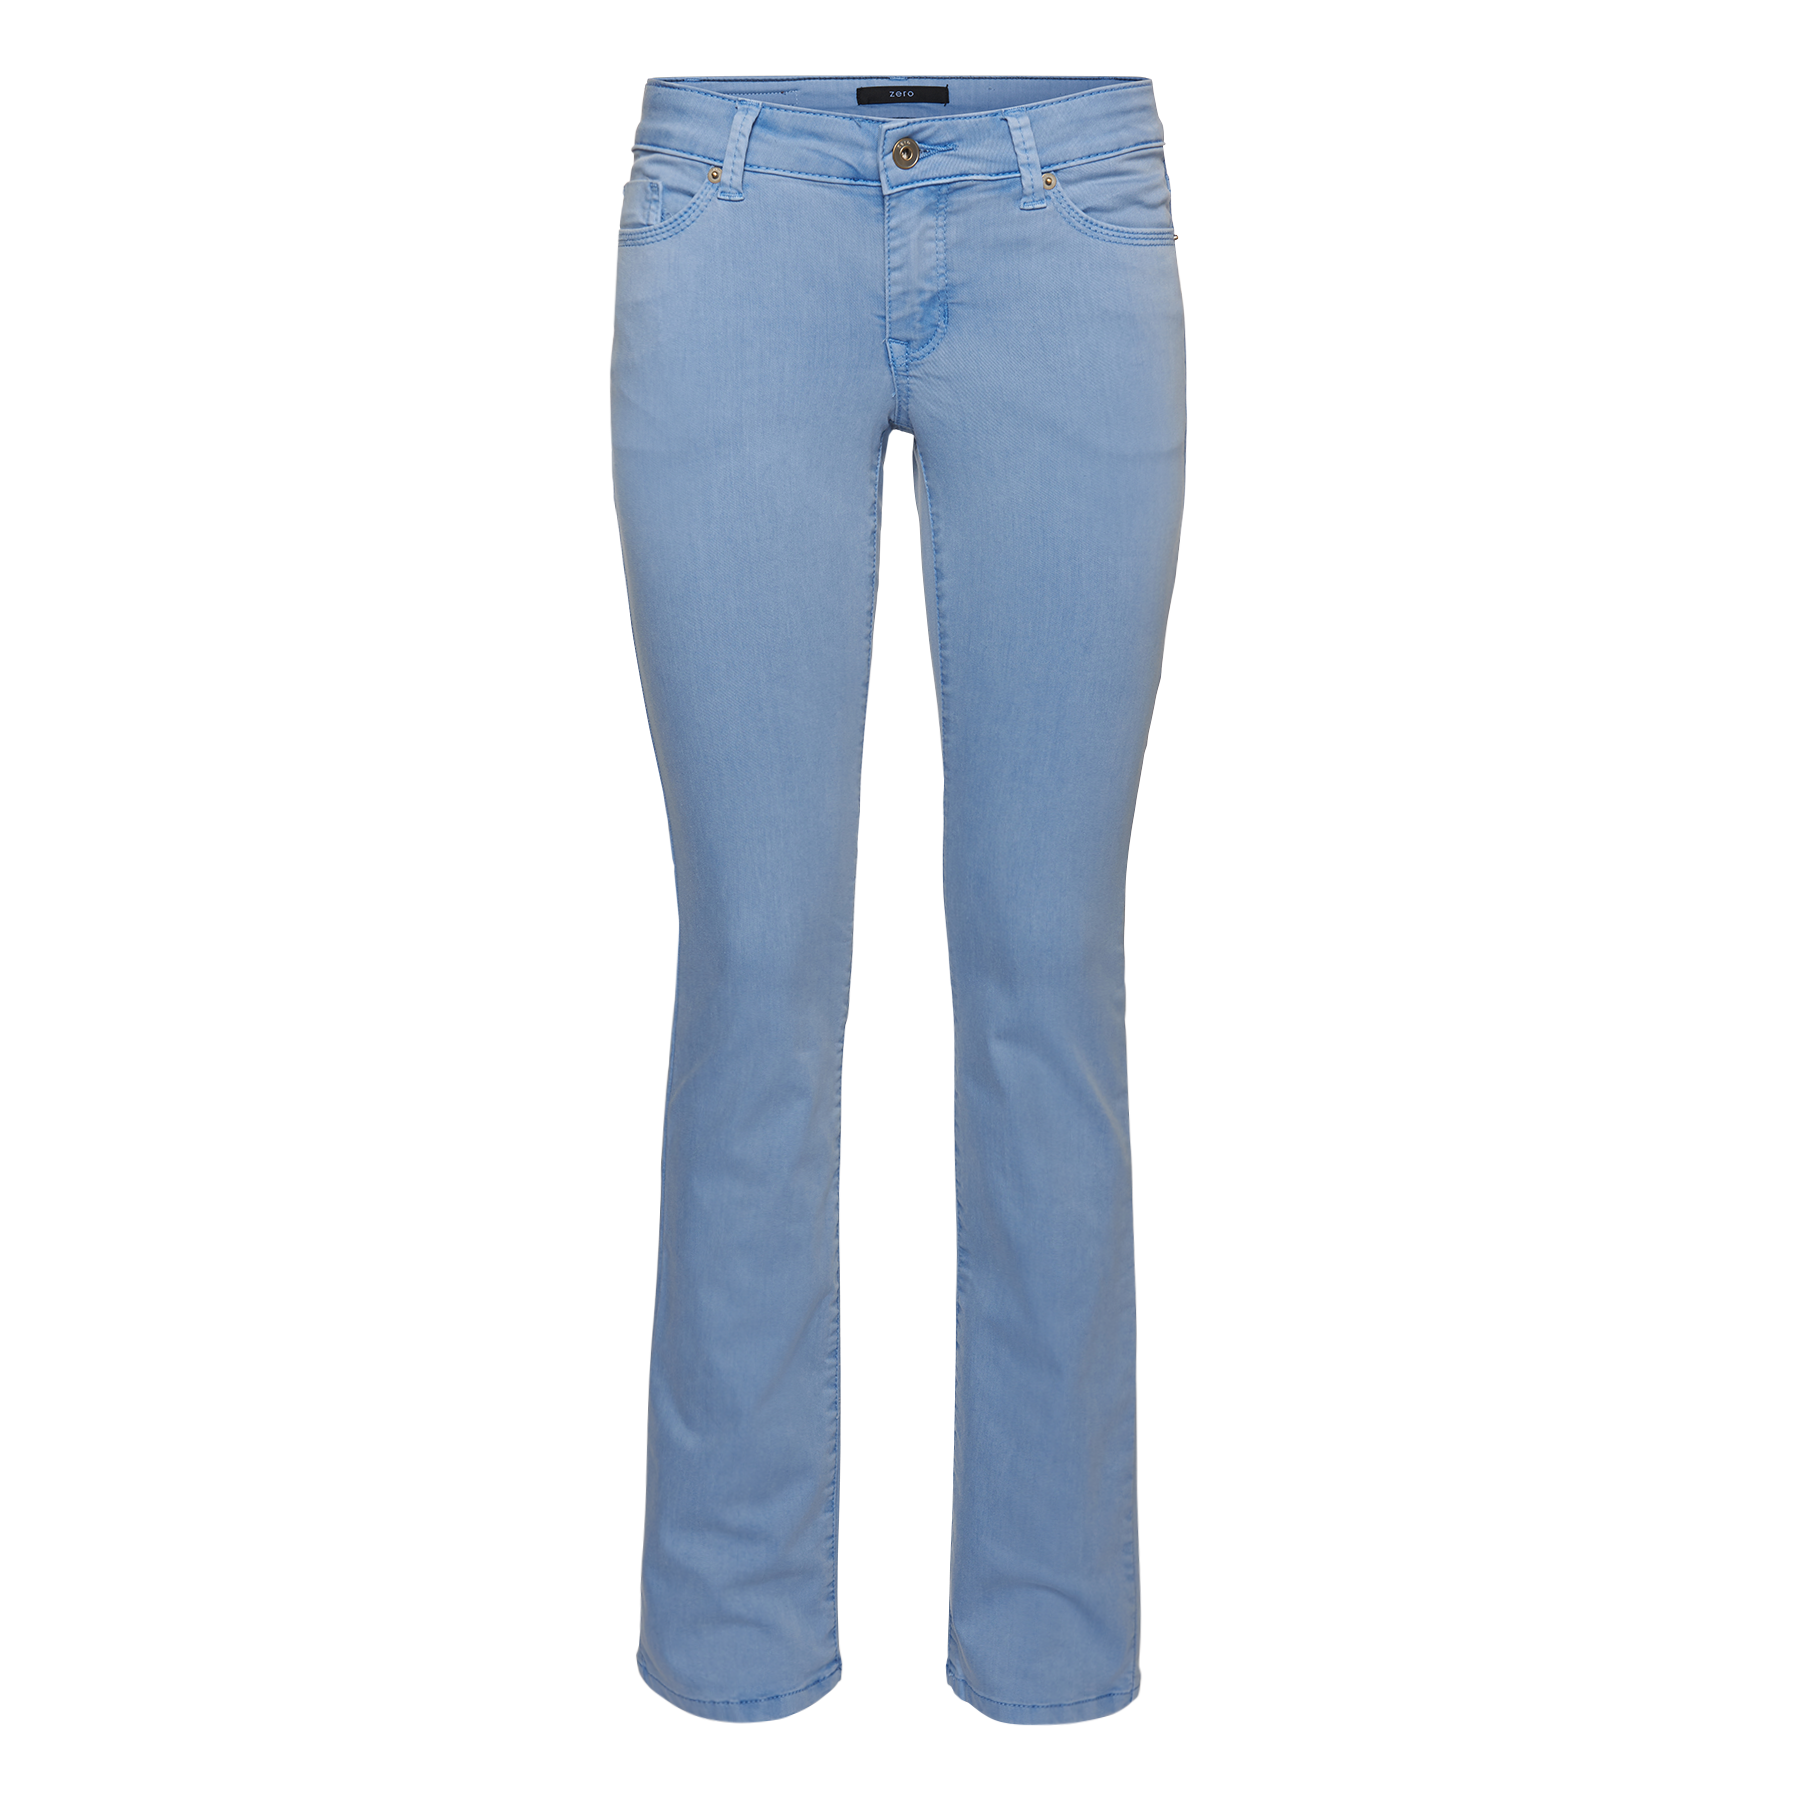 Slim Fit Jeans Seattle, 32 inch lily blue